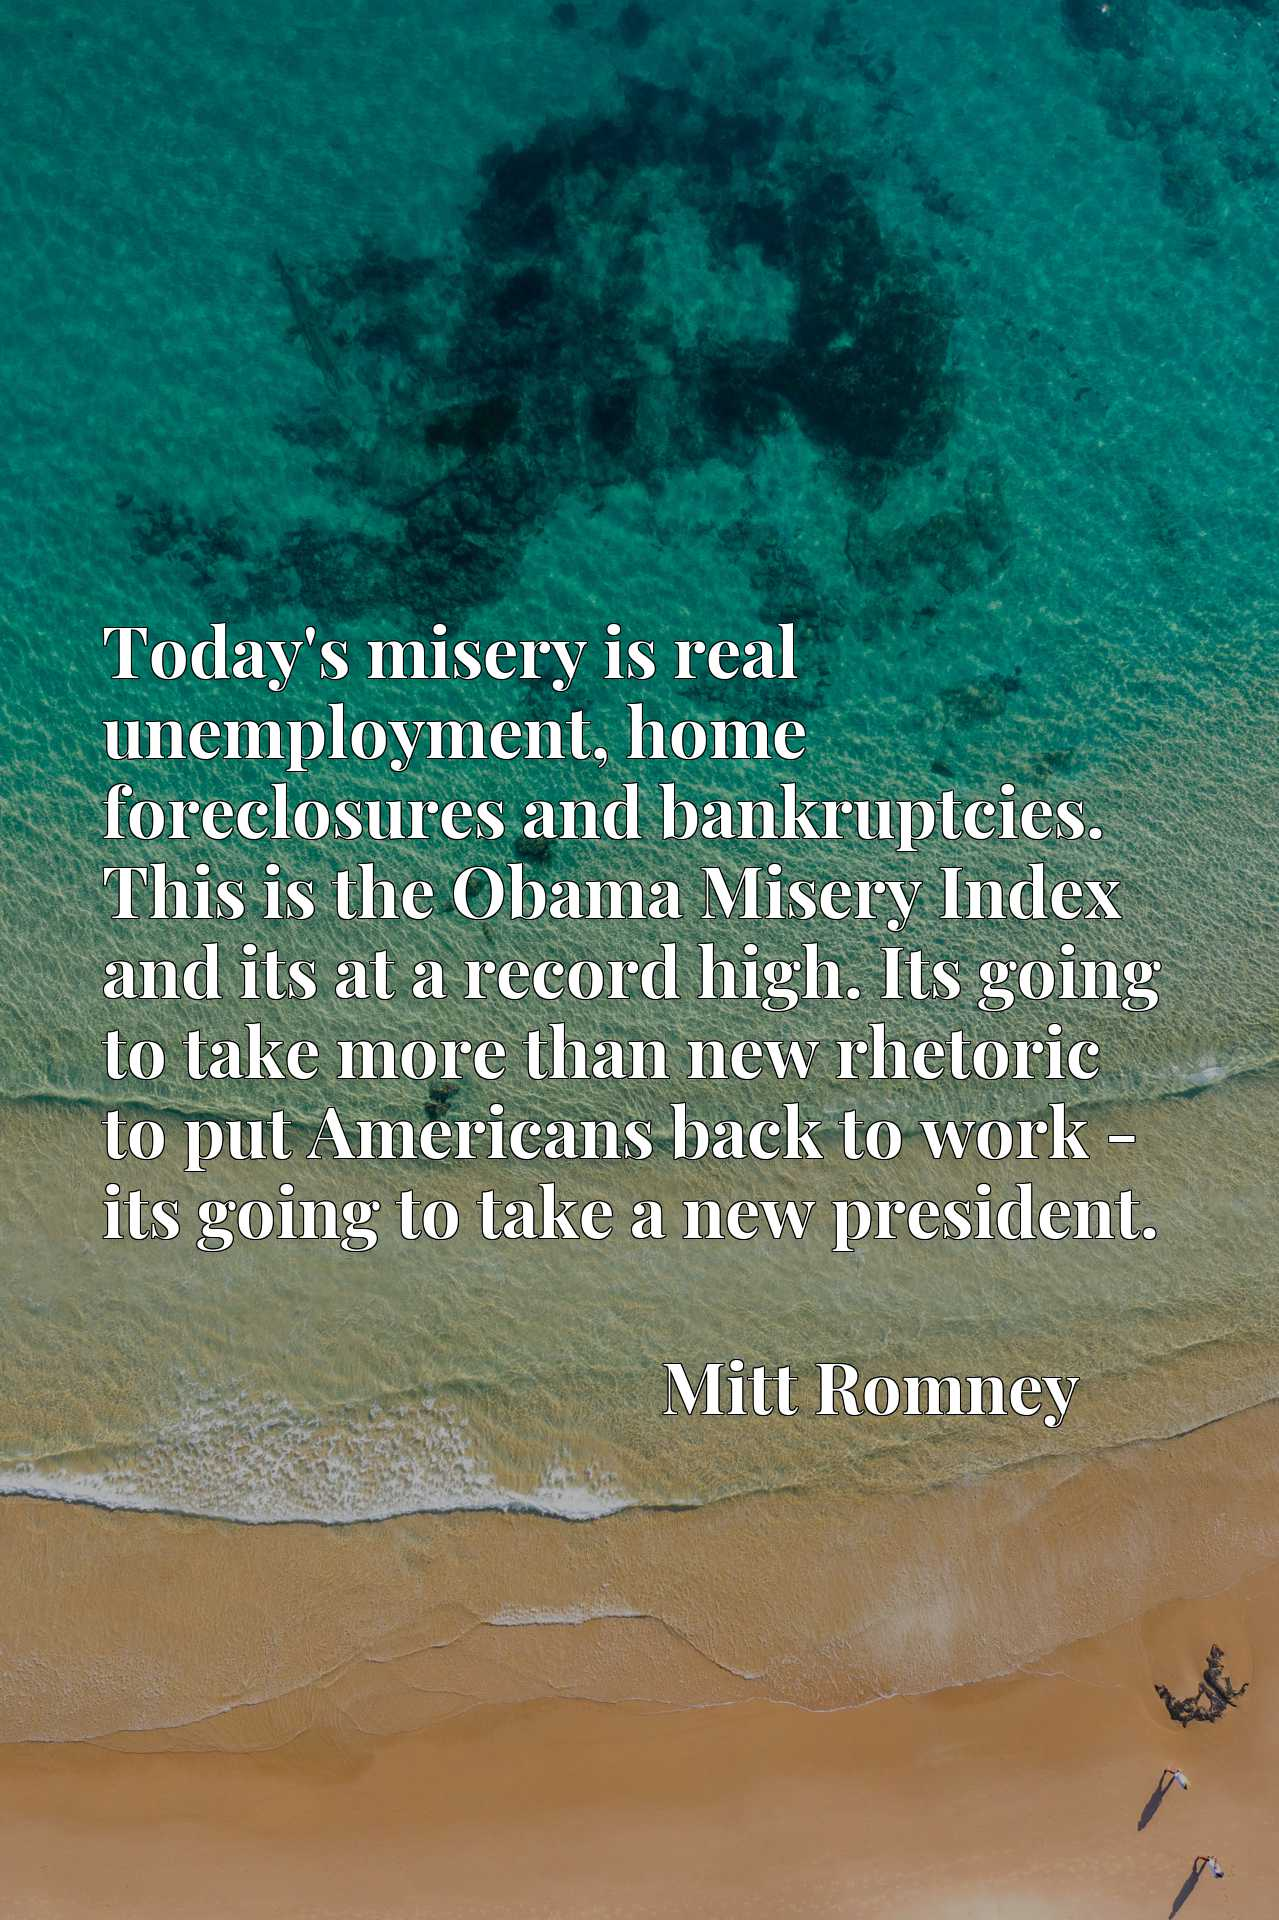 Today's misery is real unemployment, home foreclosures and bankruptcies. This is the Obama Misery Index and its at a record high. Its going to take more than new rhetoric to put Americans back to work - its going to take a new president.